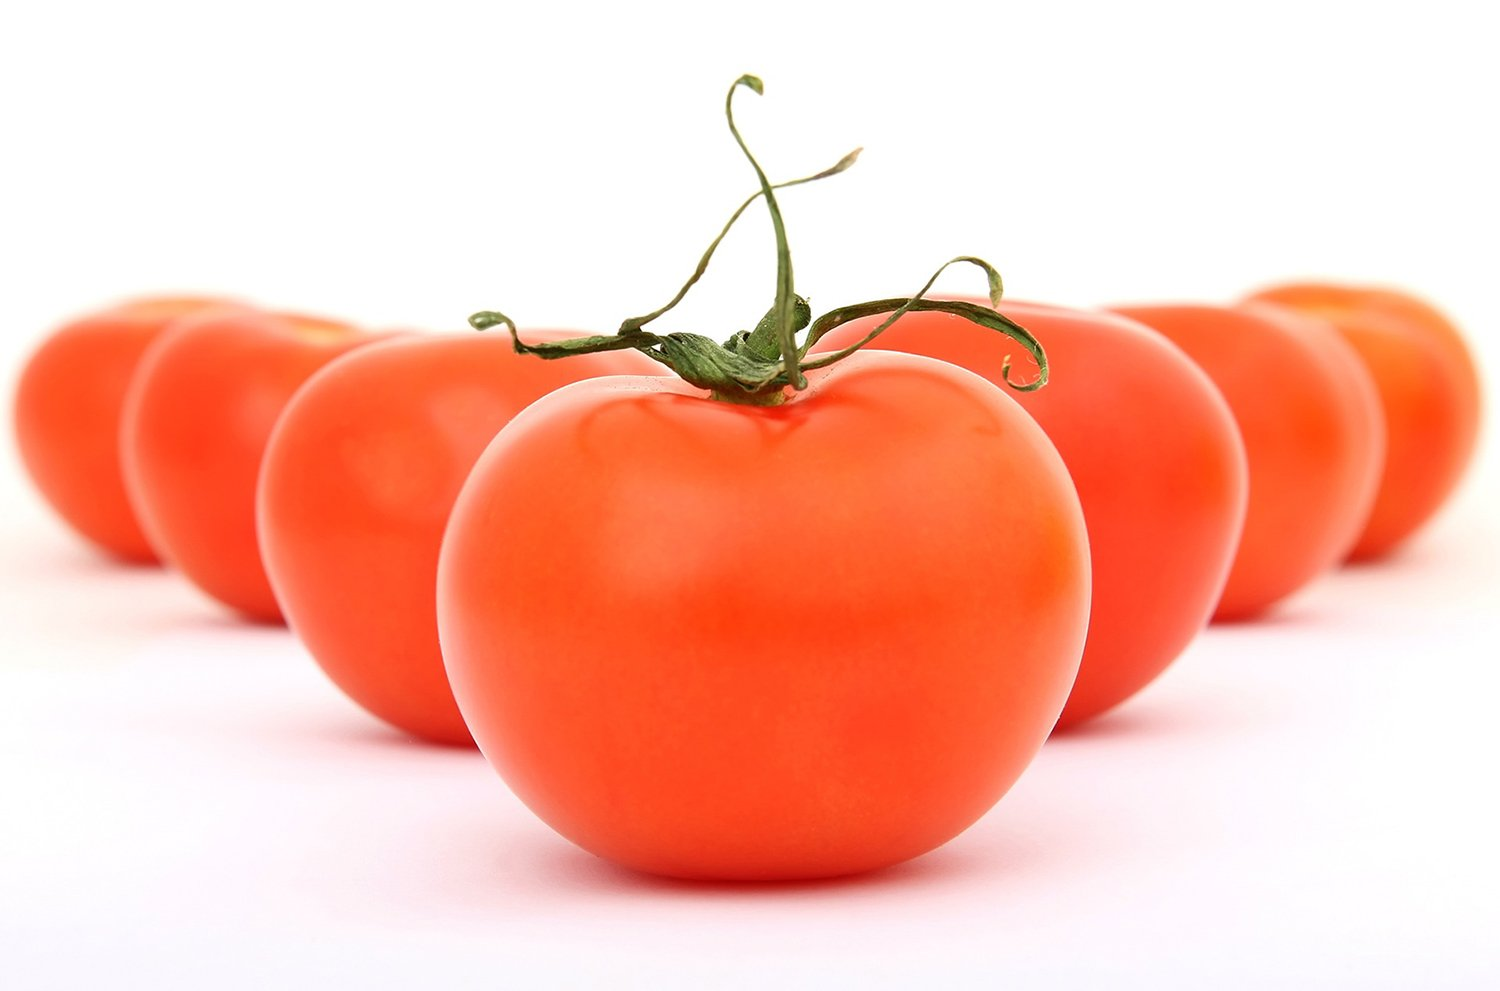 How To Grow The Ace 55 Tomato